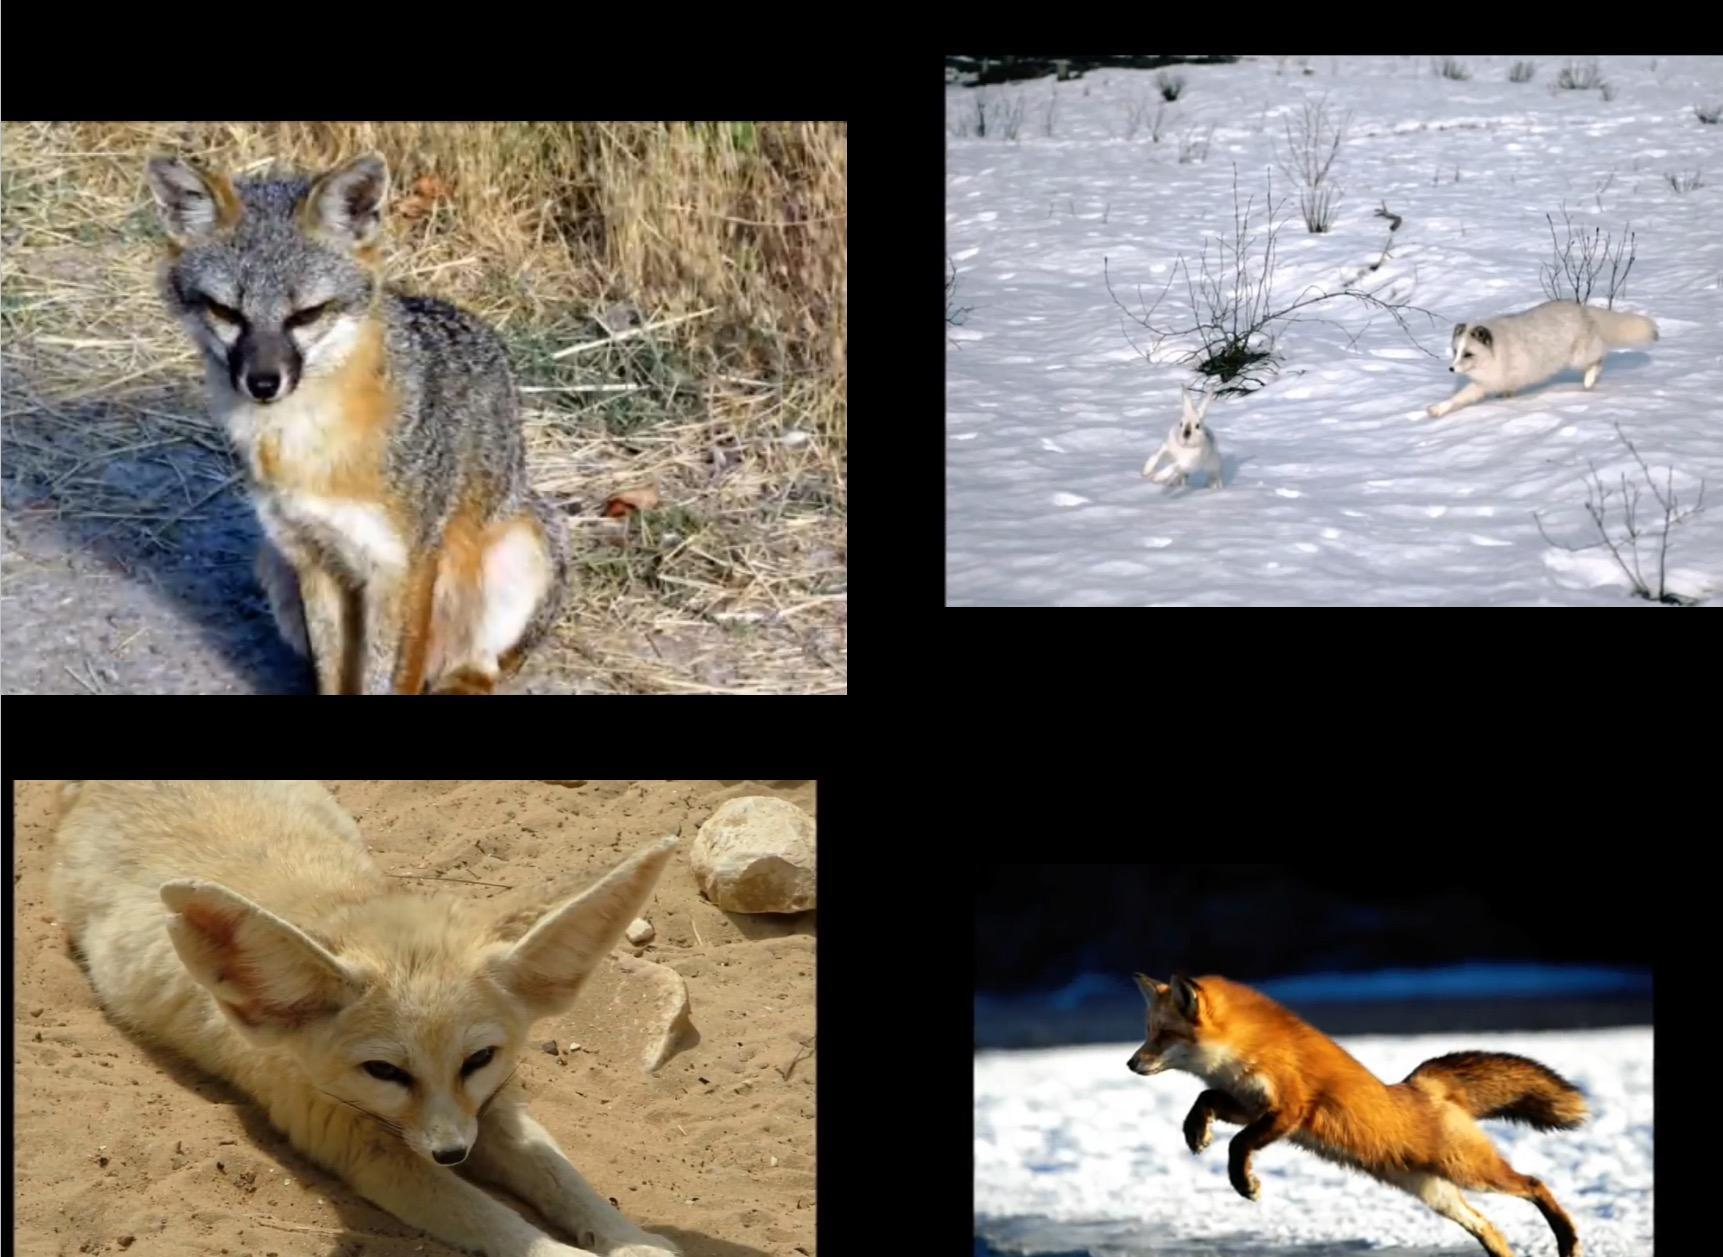 What Fox Are You?